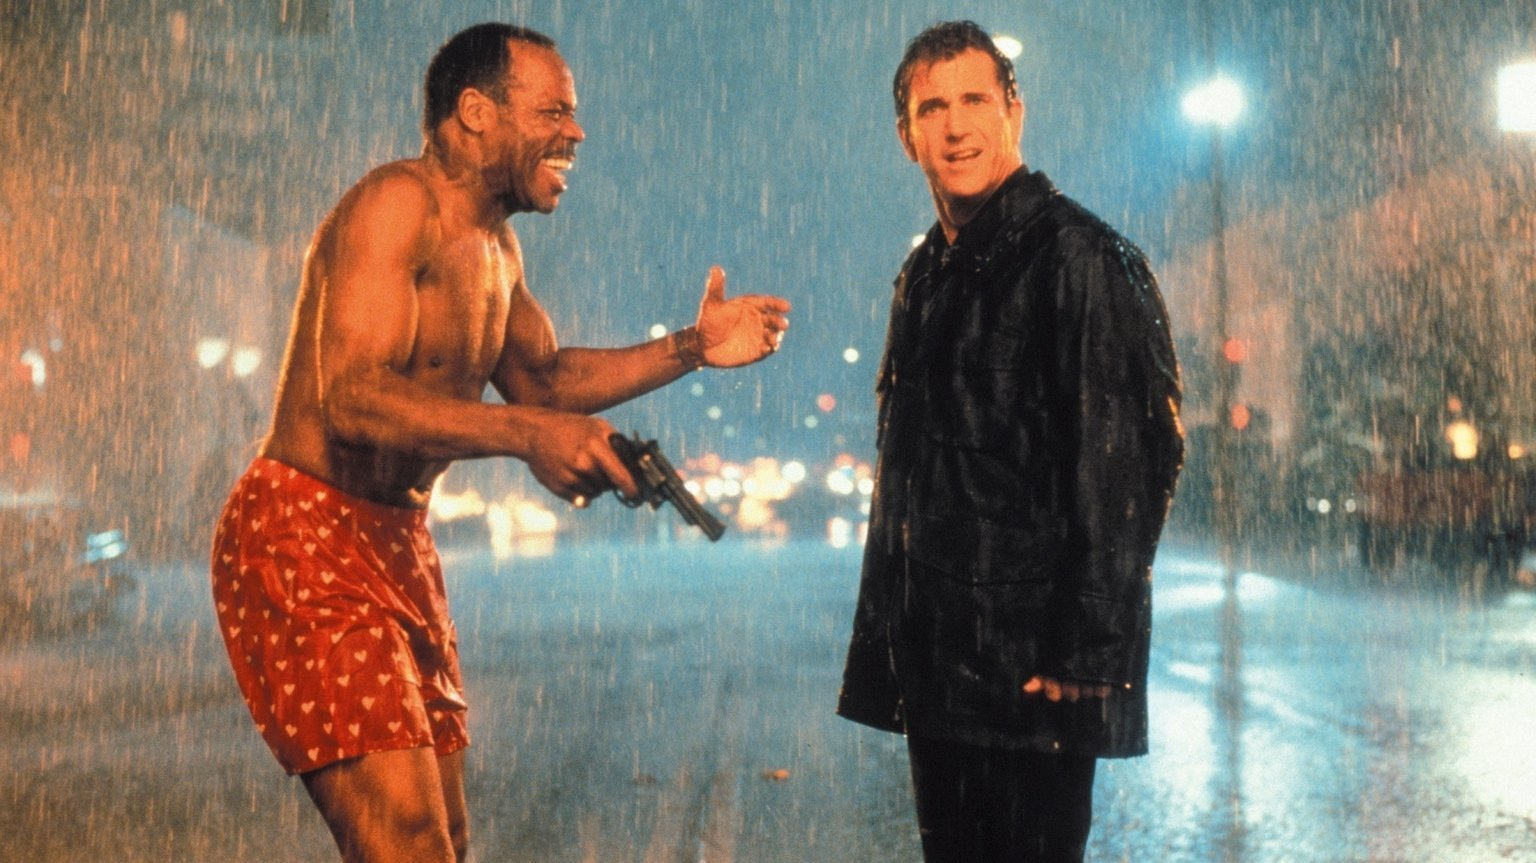 Lethal Weapon 4 opening scene